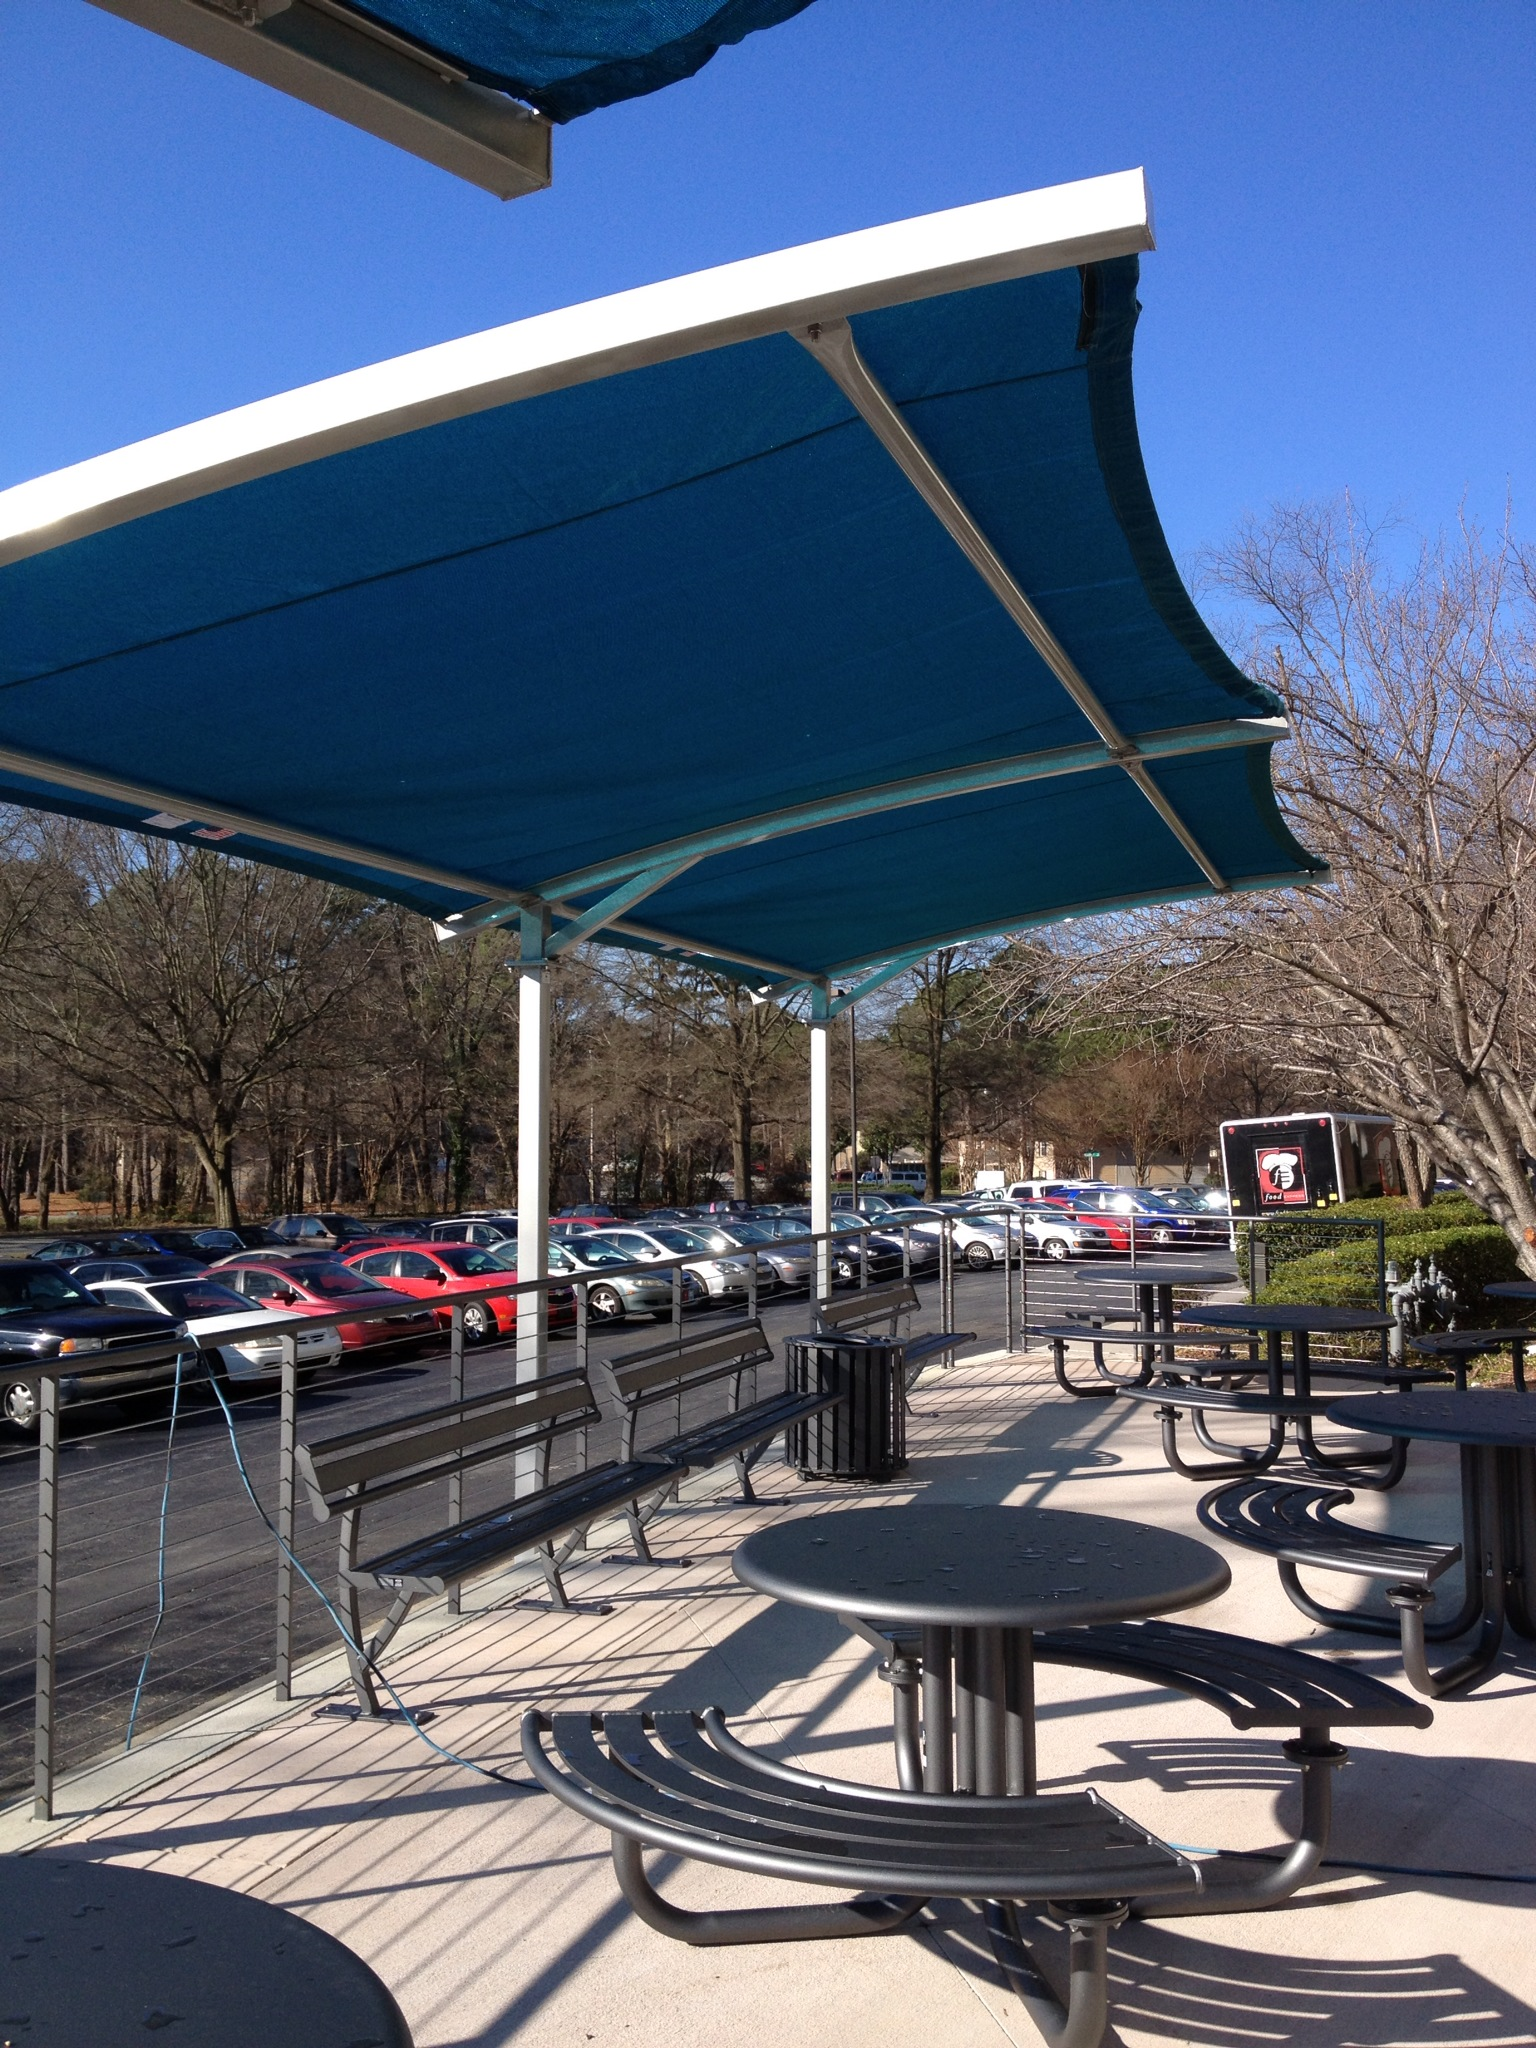 Balcony Shade Design: Office Renovations Expand To Exterior Shade Structures